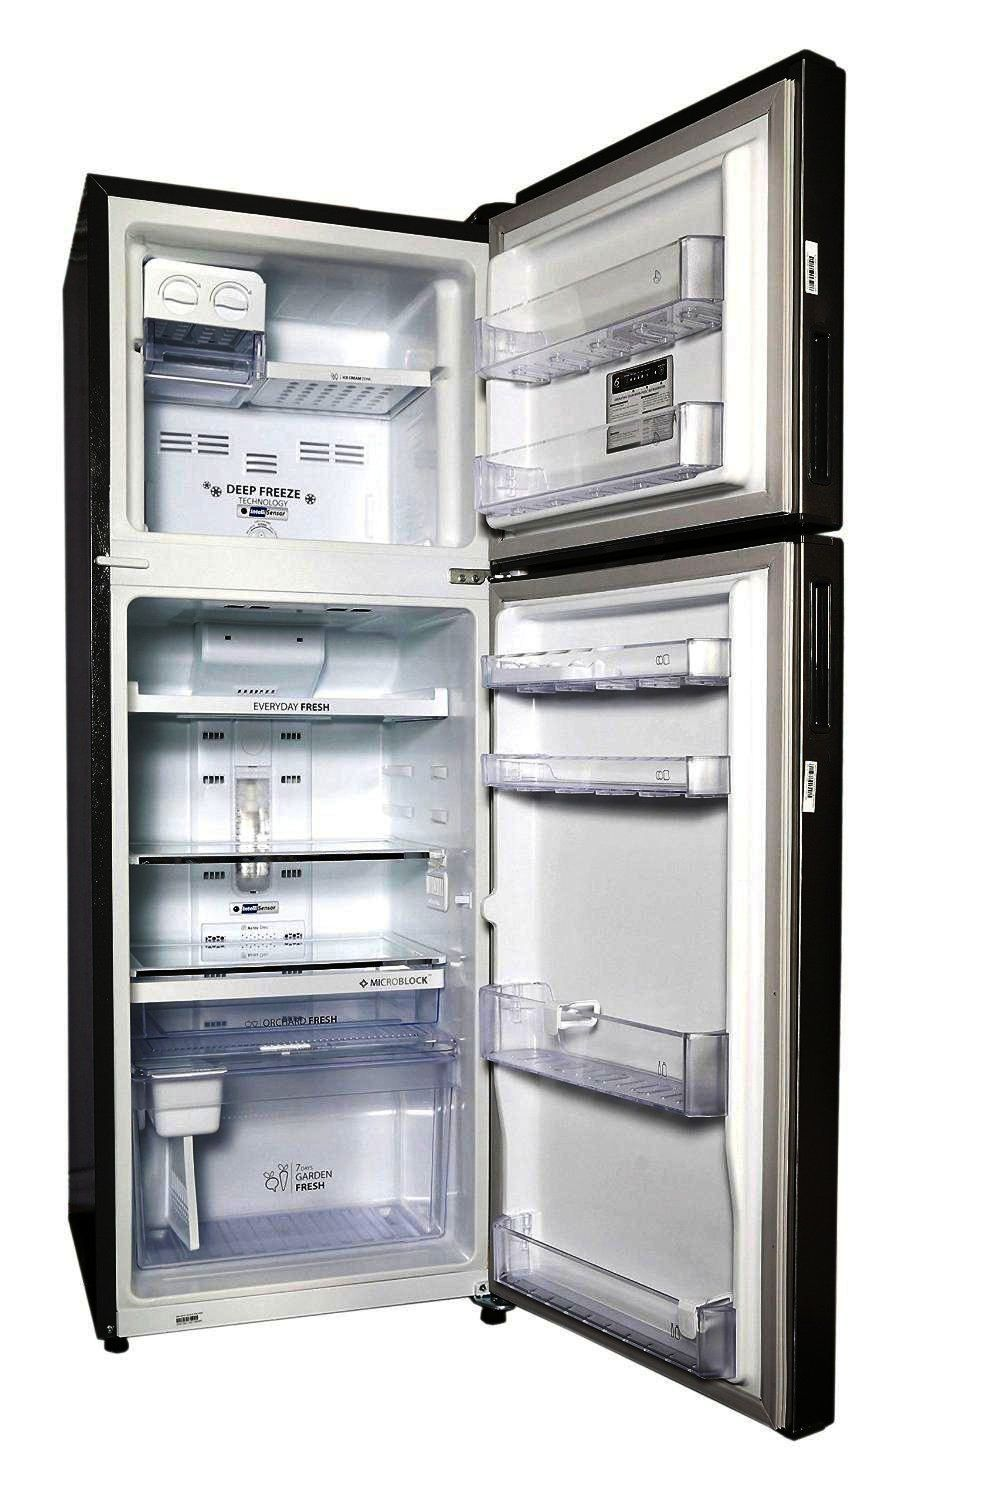 4 Best Refrigerator Under 10000 Rupees In India Market Double